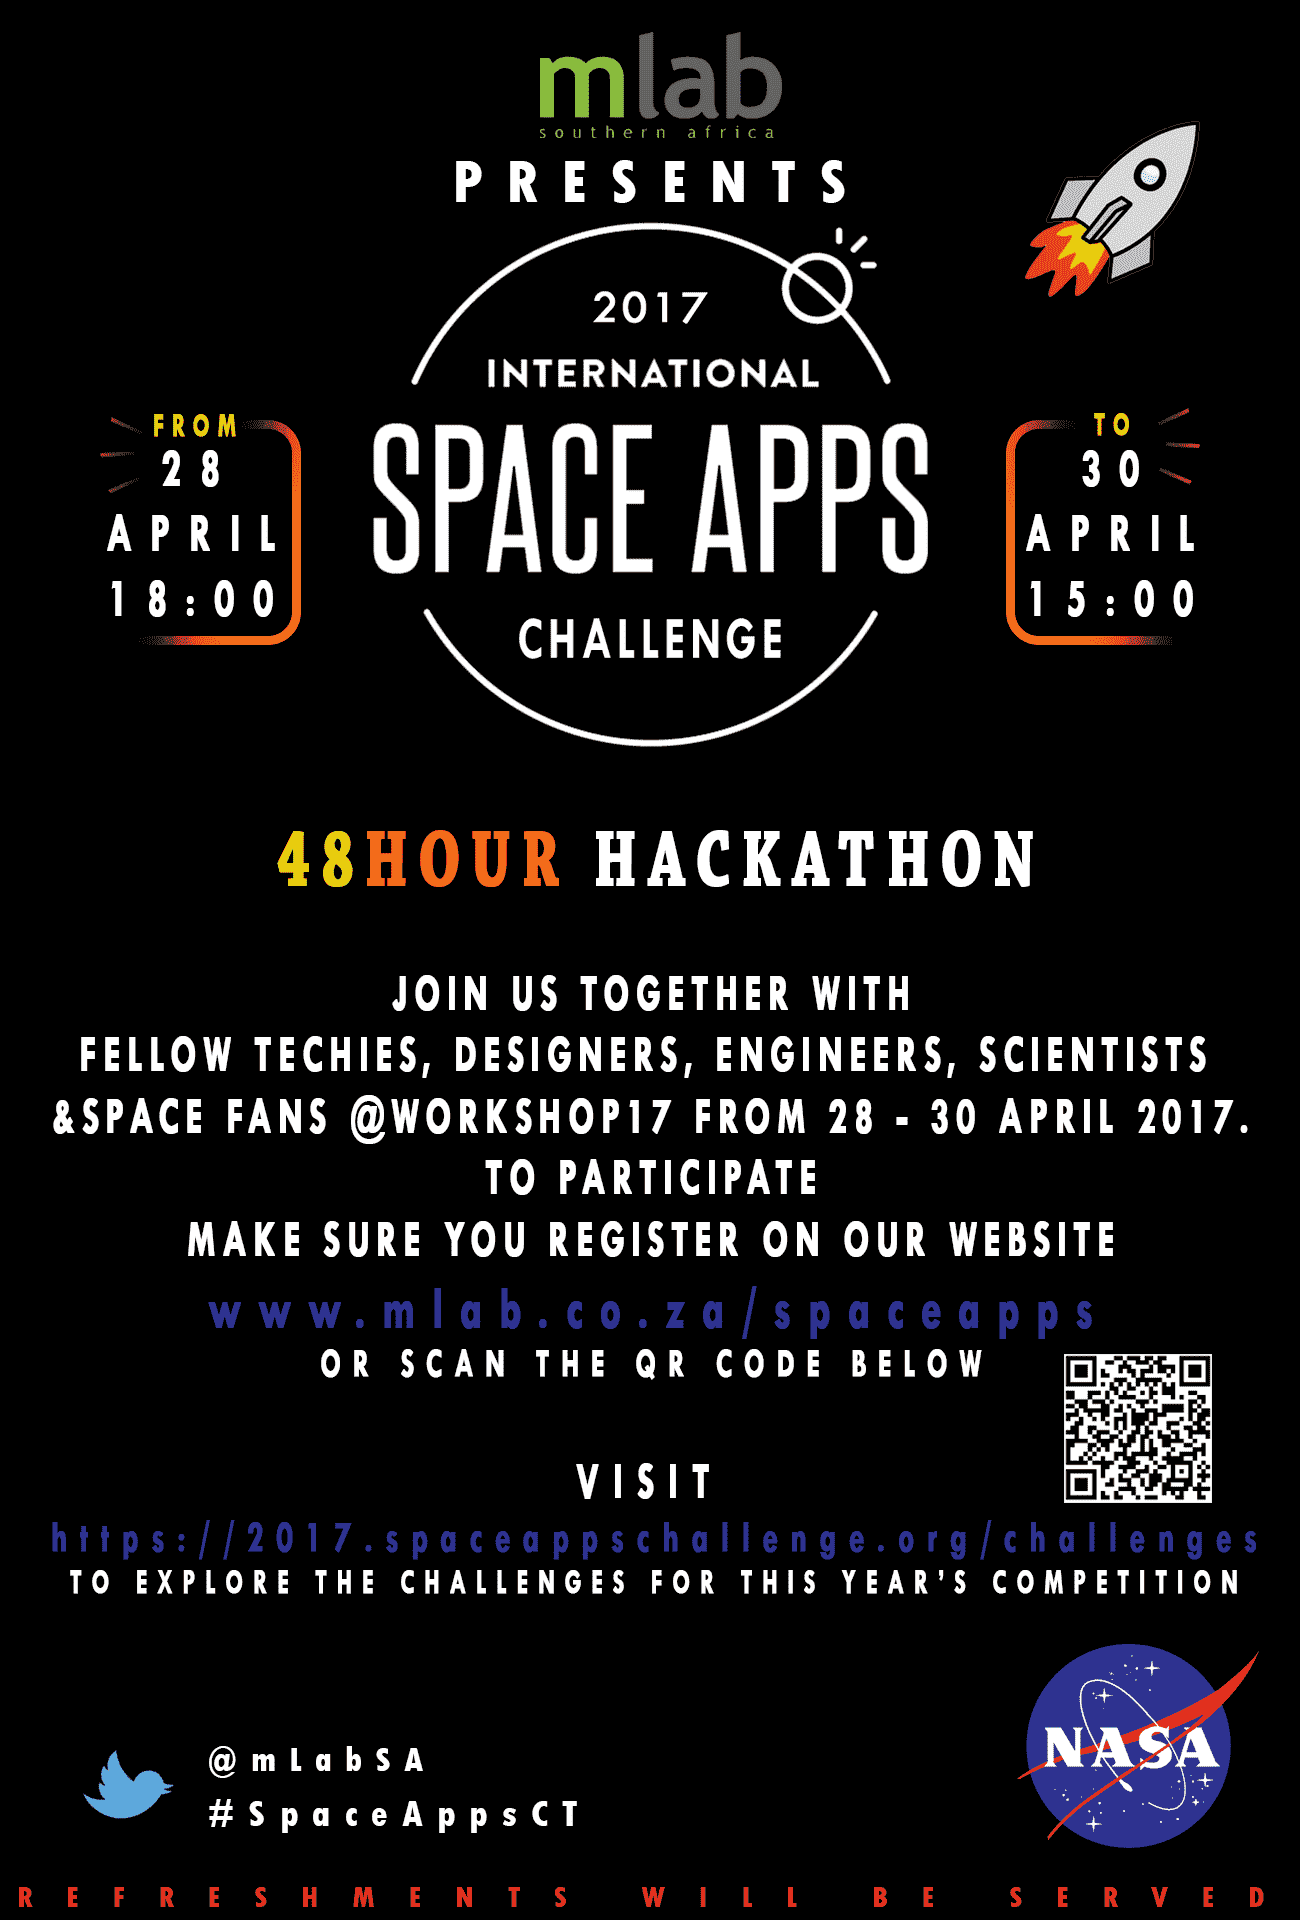 Space Apps Hackathon 2017 Poster